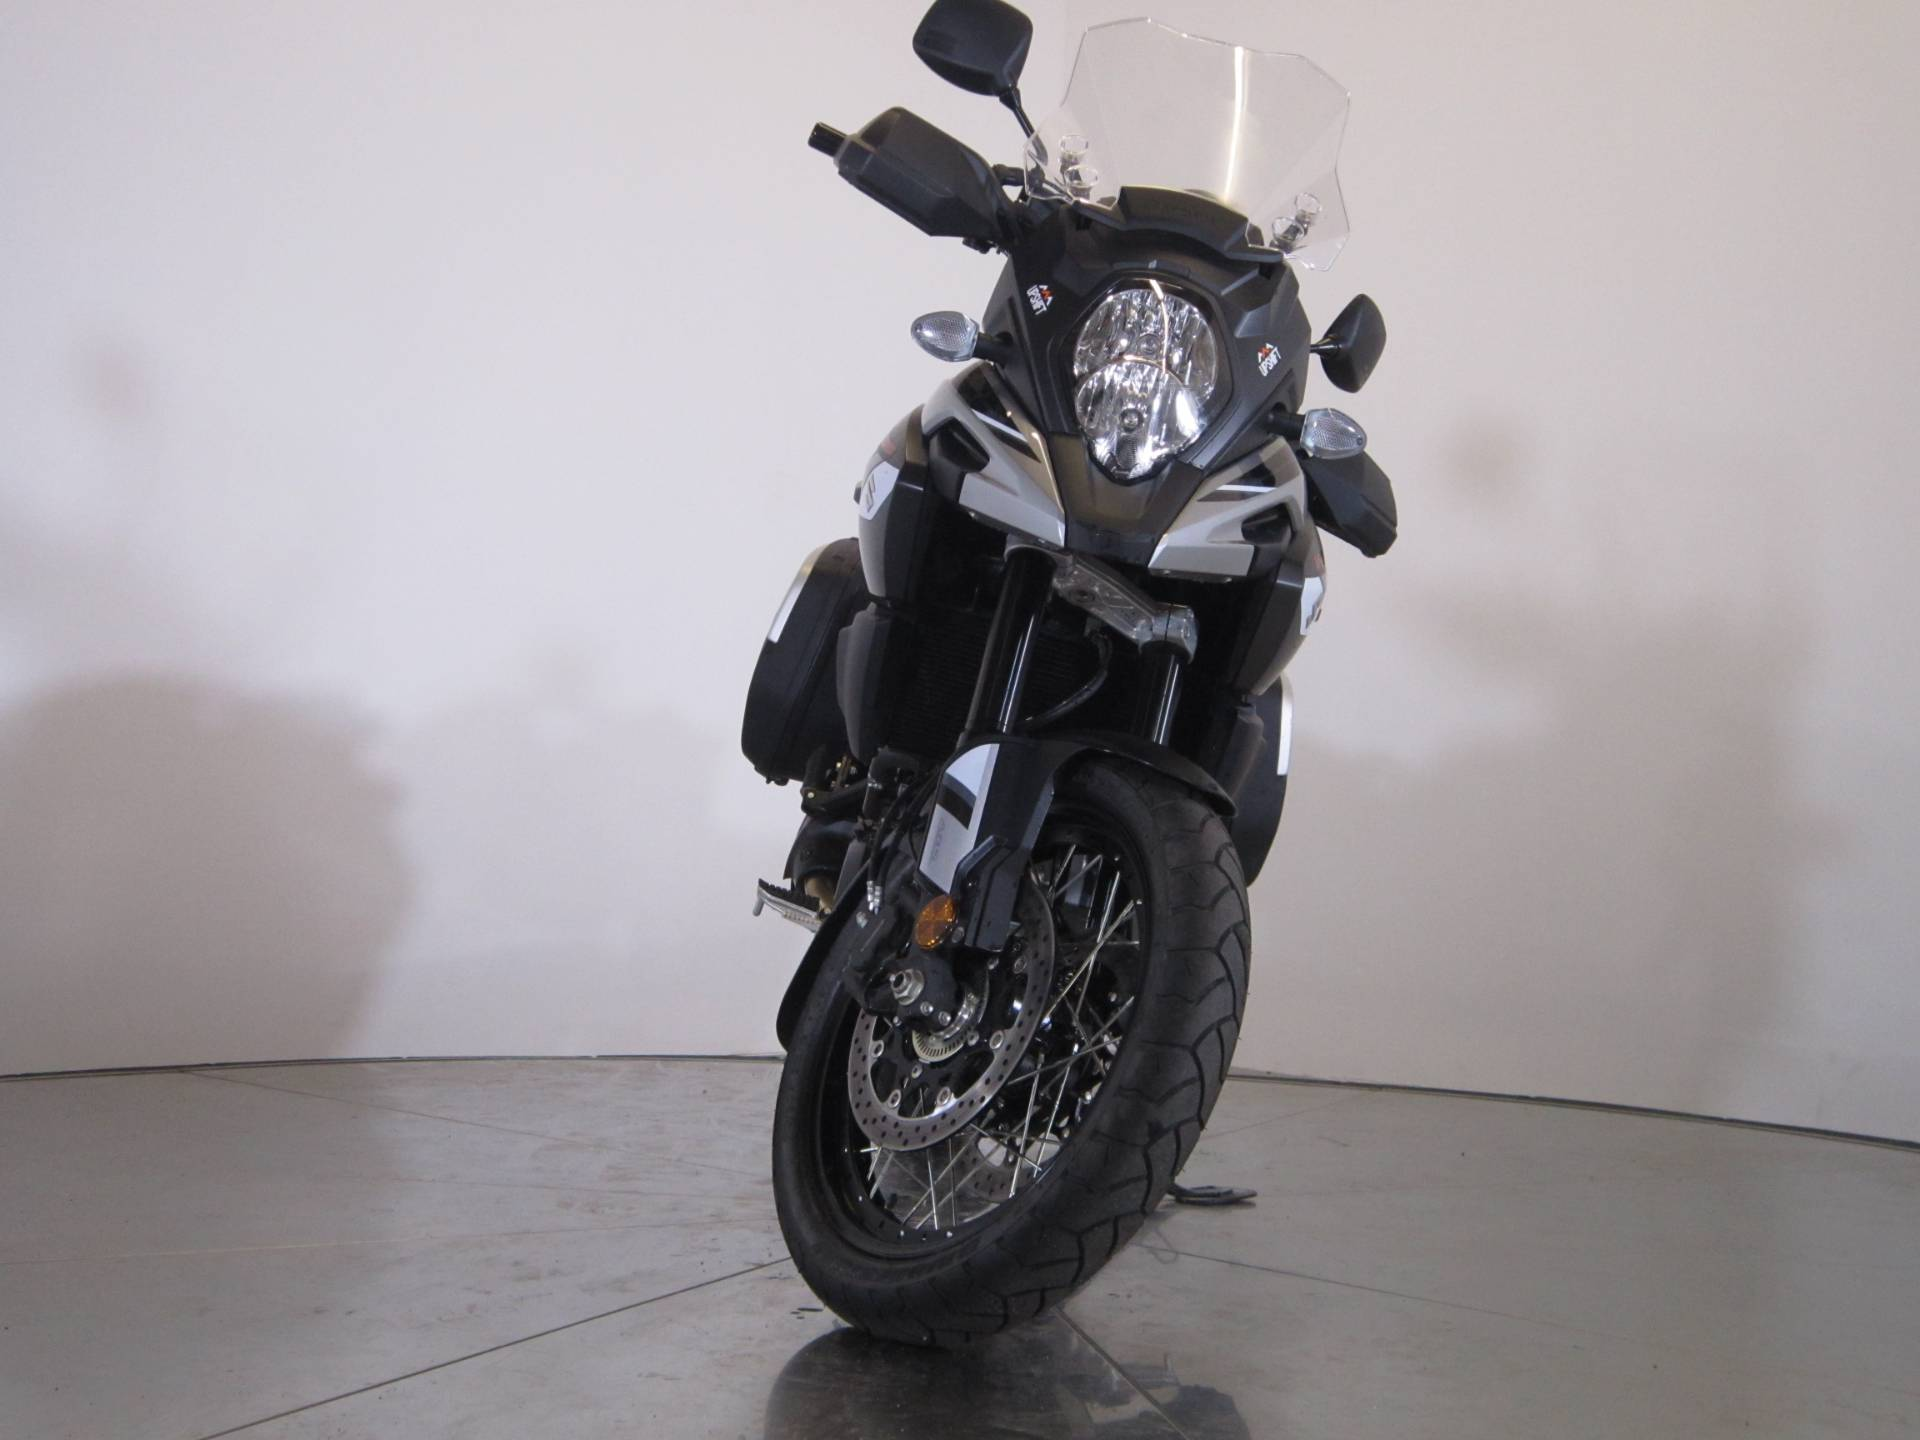 2018 Suzuki V-Strom 1000XT in Greenwood Village, Colorado